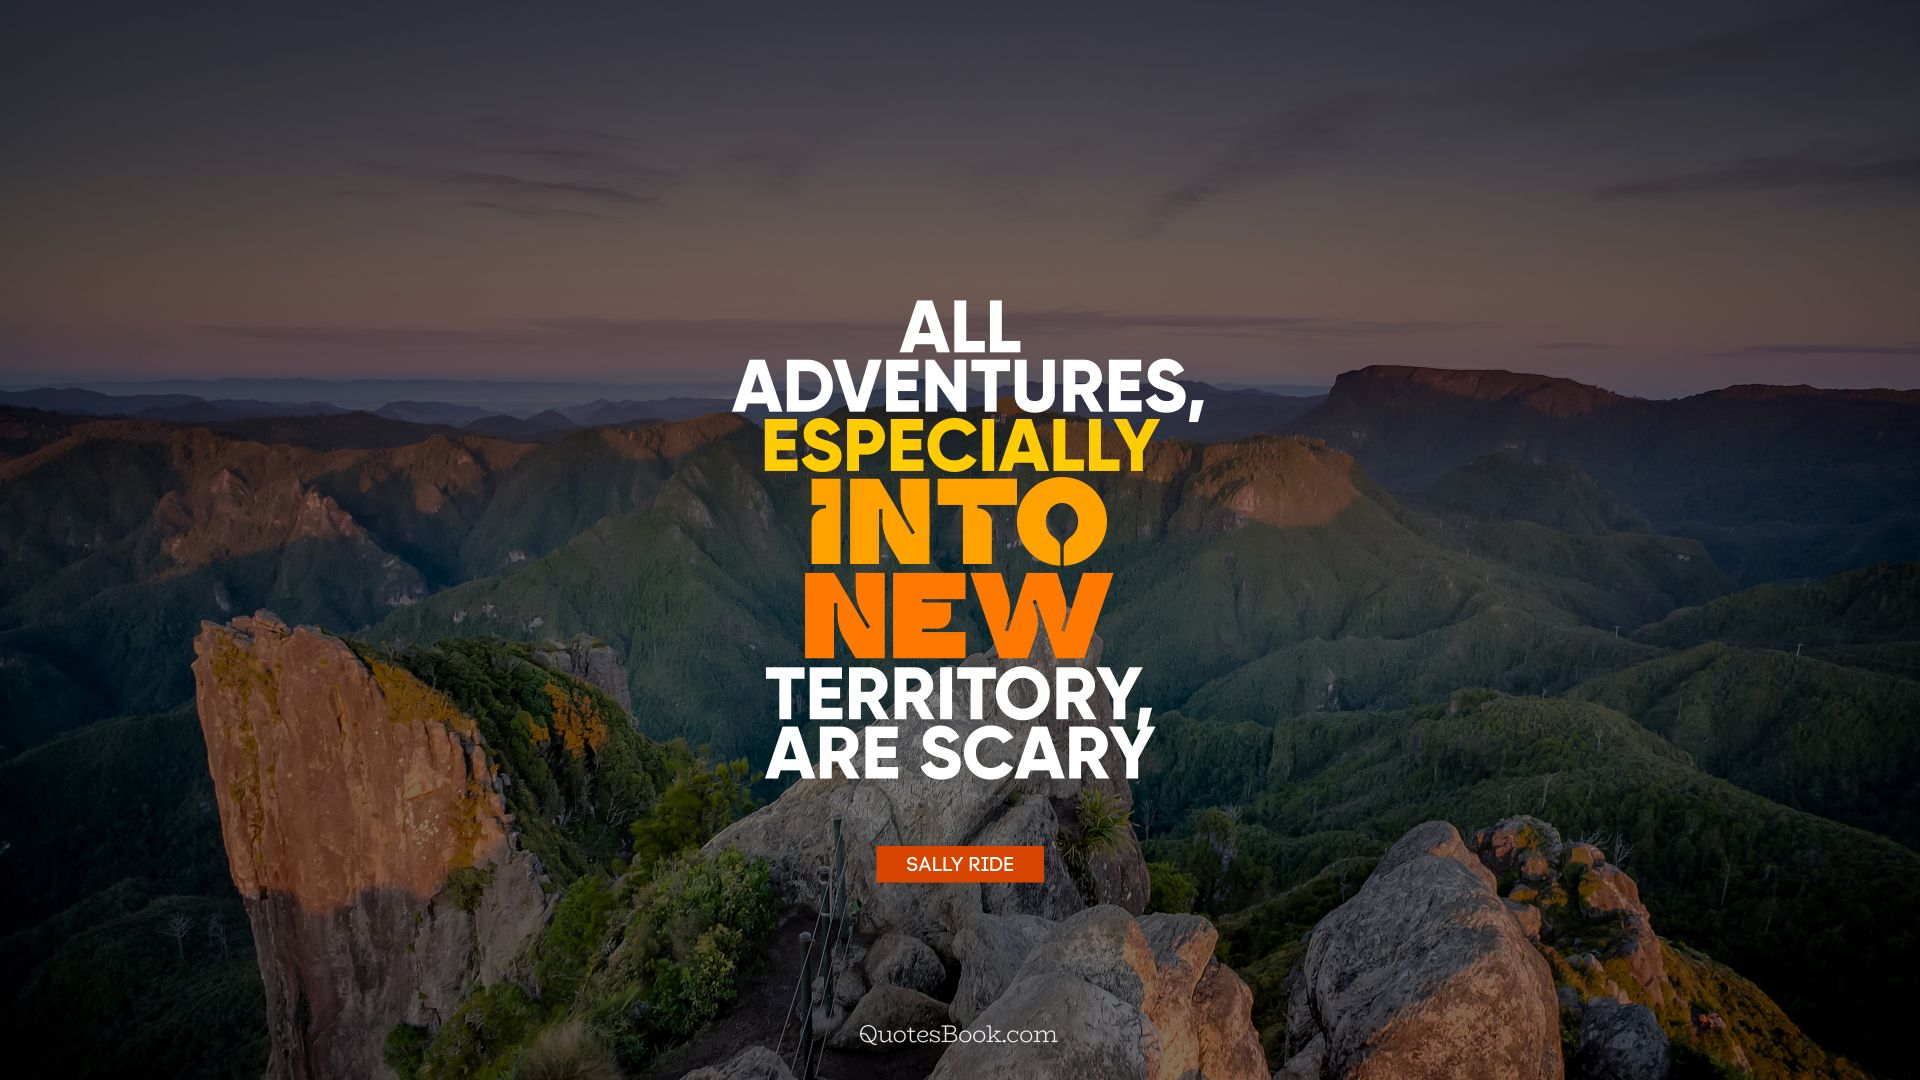 All adventures, especially into new territory, are scary. - Quote by Sally Ride